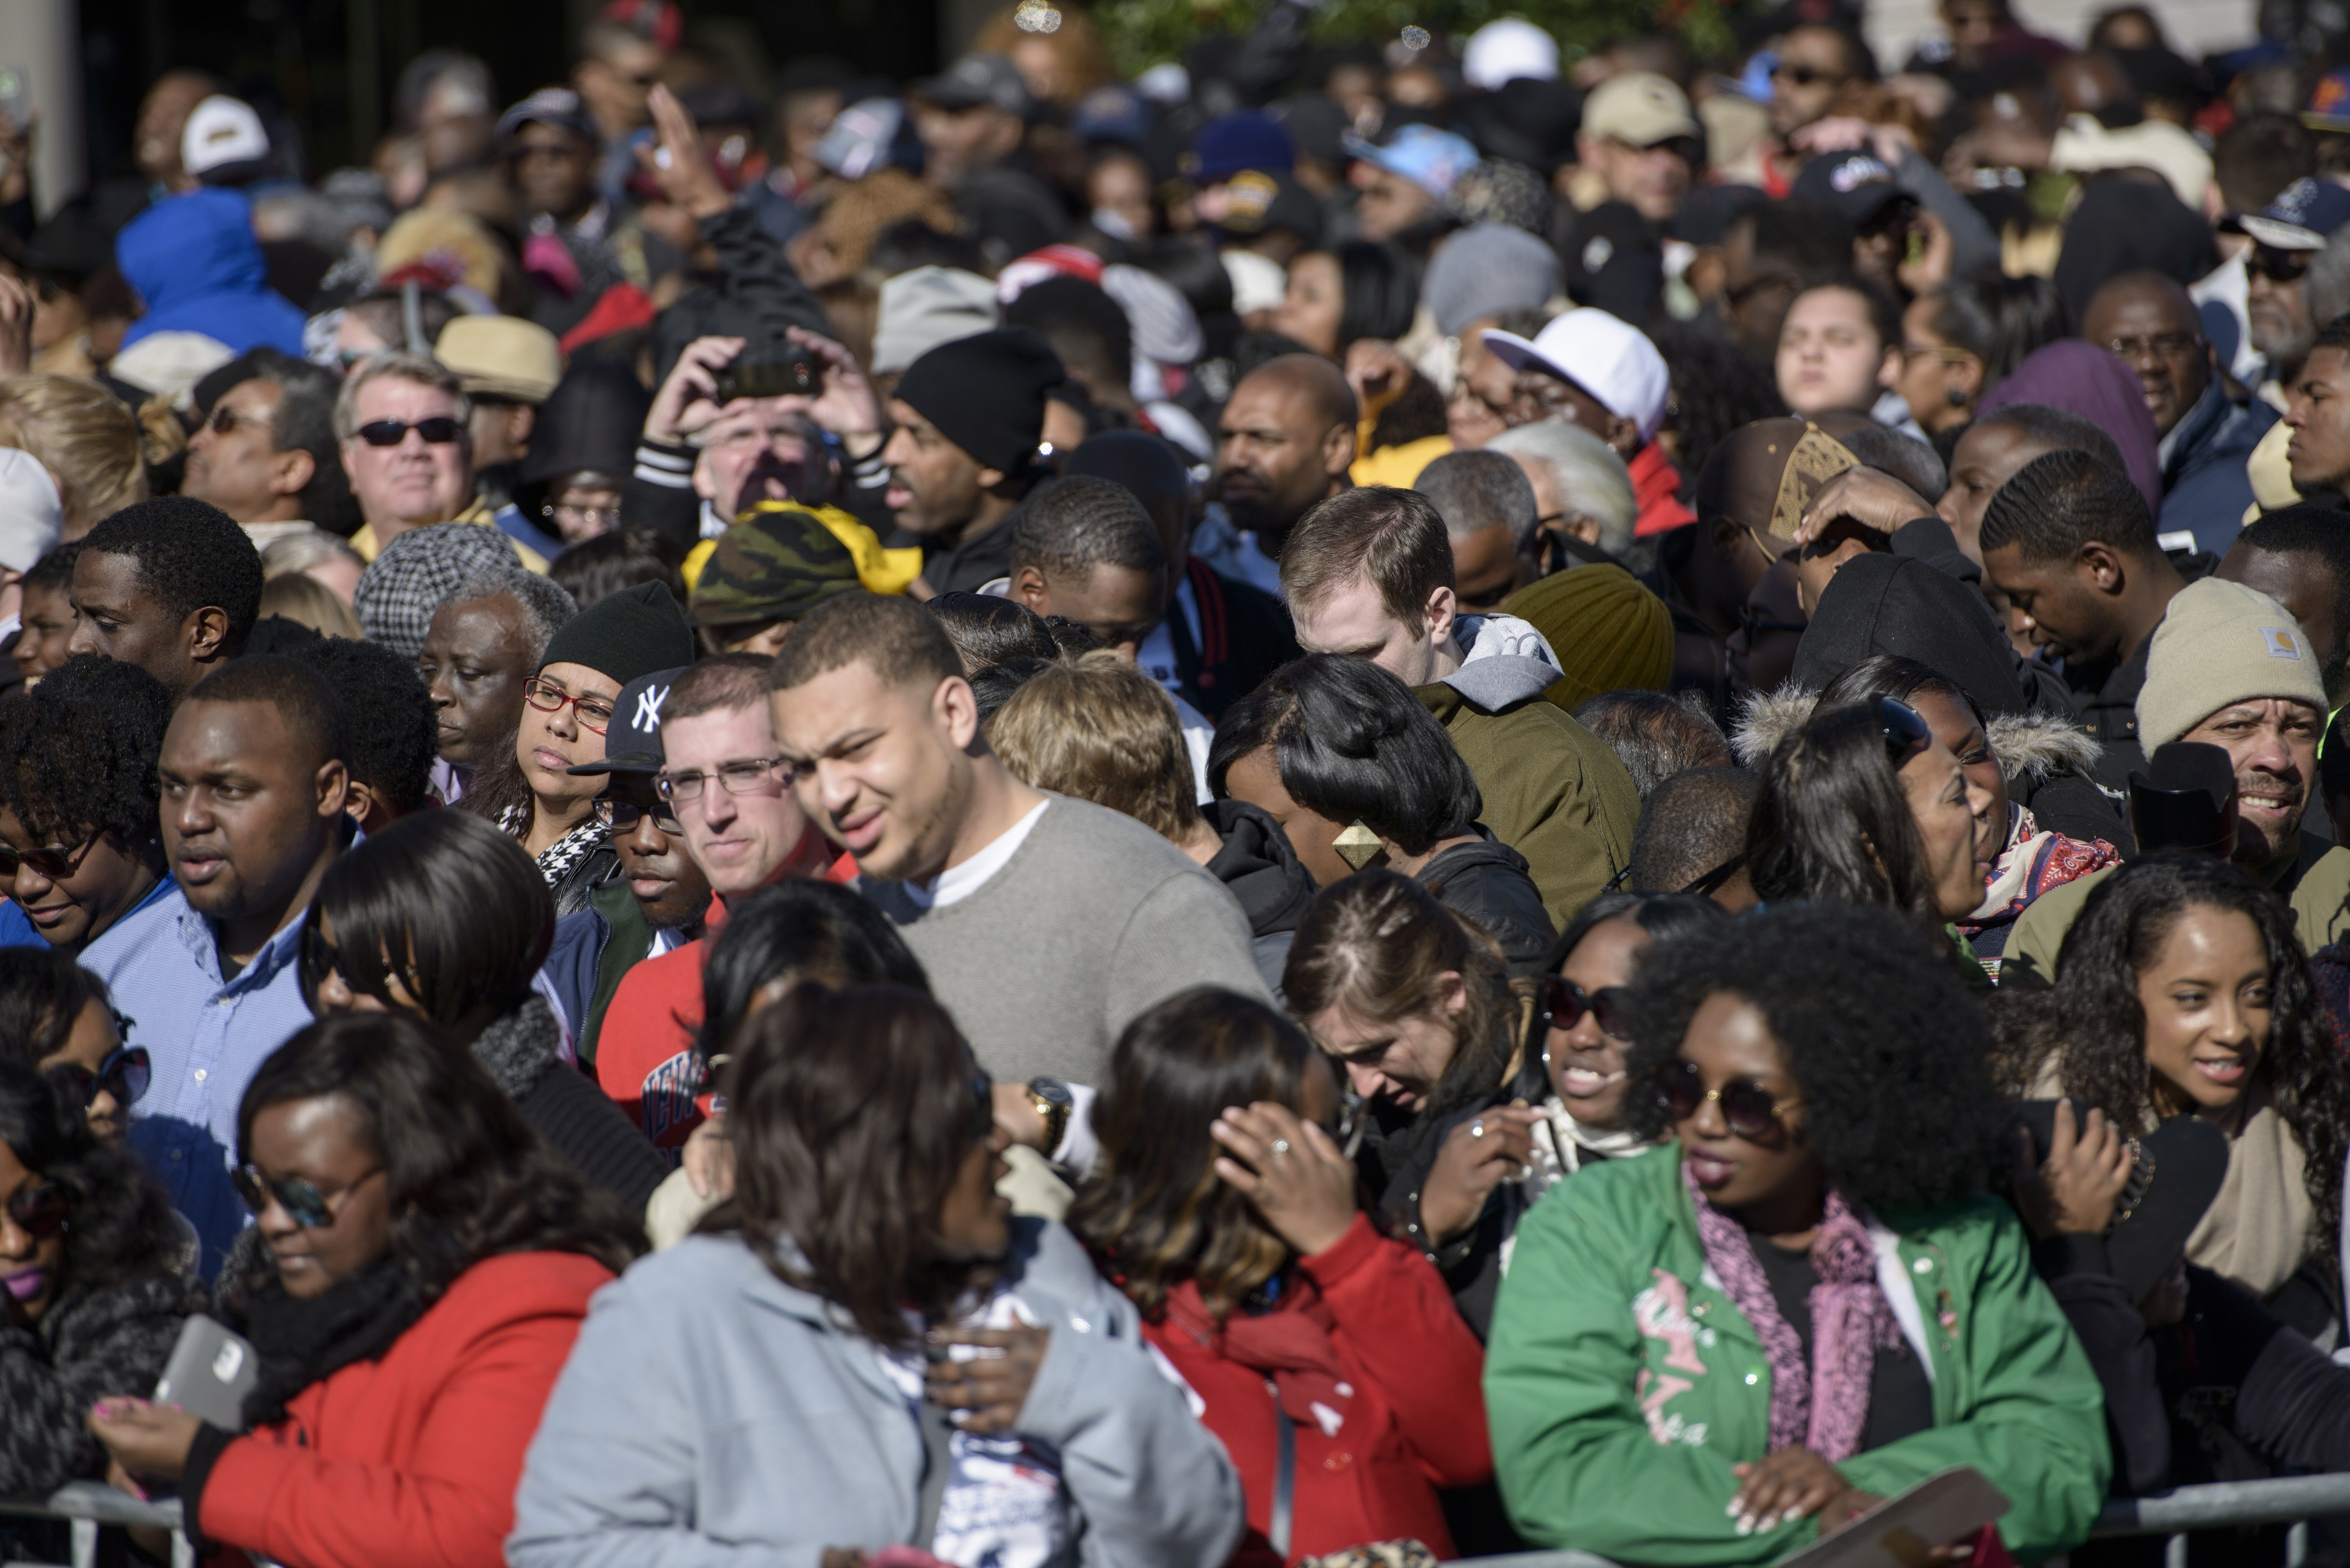 People fill Broad Street while waiting for an anniversary event at the Edmund Pettus Bridge March 7, 2015 in Selma, Alabama. US President Barack Obama and the first family will visit Selma to commemorate the 50th anniversary of Bloody Sunday, when civil rights marchers attempting to walk to the Alabama capital of Montgomery to end voting discrimination against African Americans clashed with police. AFP PHOTO/BRENDAN SMIALOWSKI (Photo credit should read BRENDAN SMIALOWSKI/AFP/Getty Images)